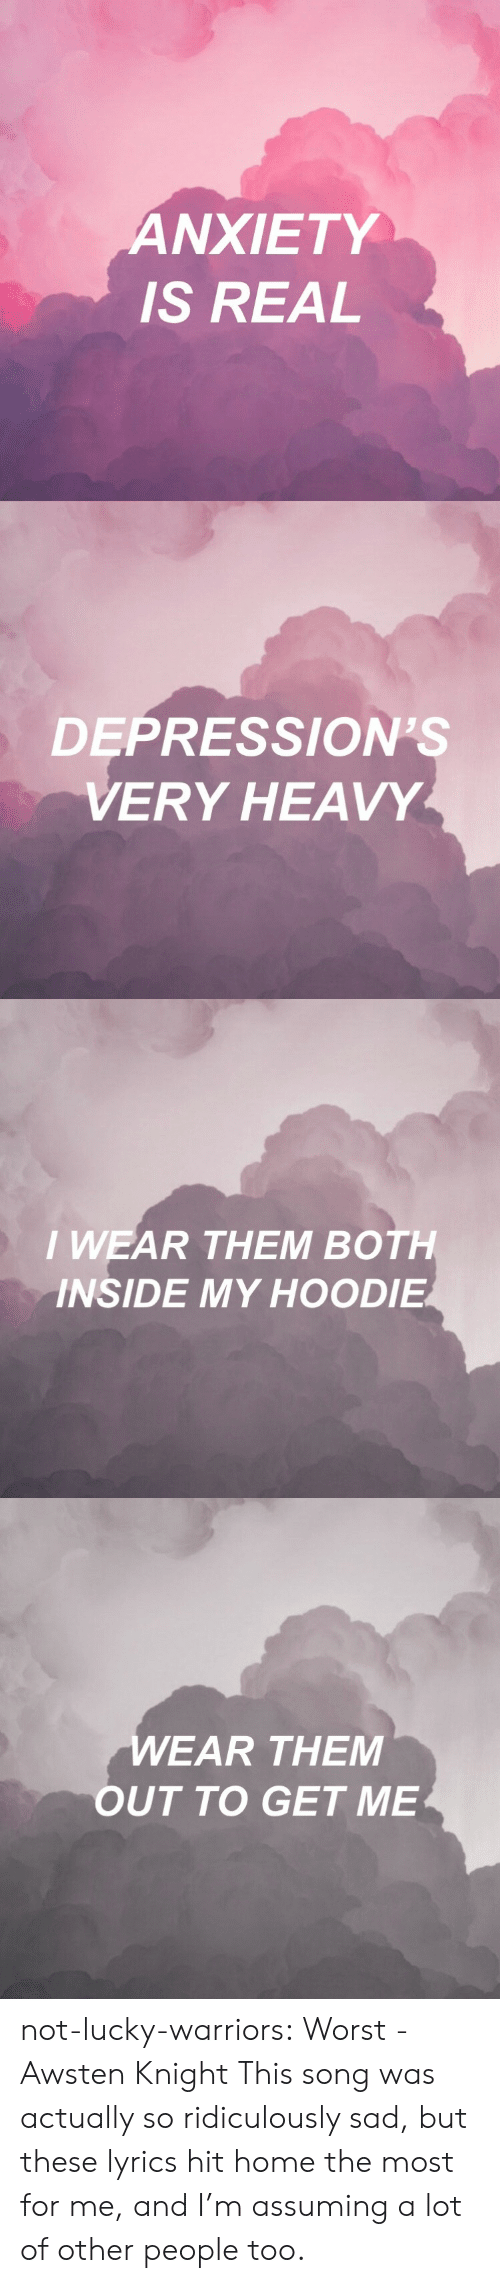 Tumblr, Anxiety, and Blog: ANXIETY  IS REAL   DEPRESSION'S  VERY HEAVY   I WEAR THEM BOTH  INSIDE MY HOODIE   EAR THEM  OUT TO GET ME not-lucky-warriors: Worst - Awsten Knight This song was actually so ridiculously sad, but these lyrics hit home the most for me, and I'm assuming a lot of other people too.